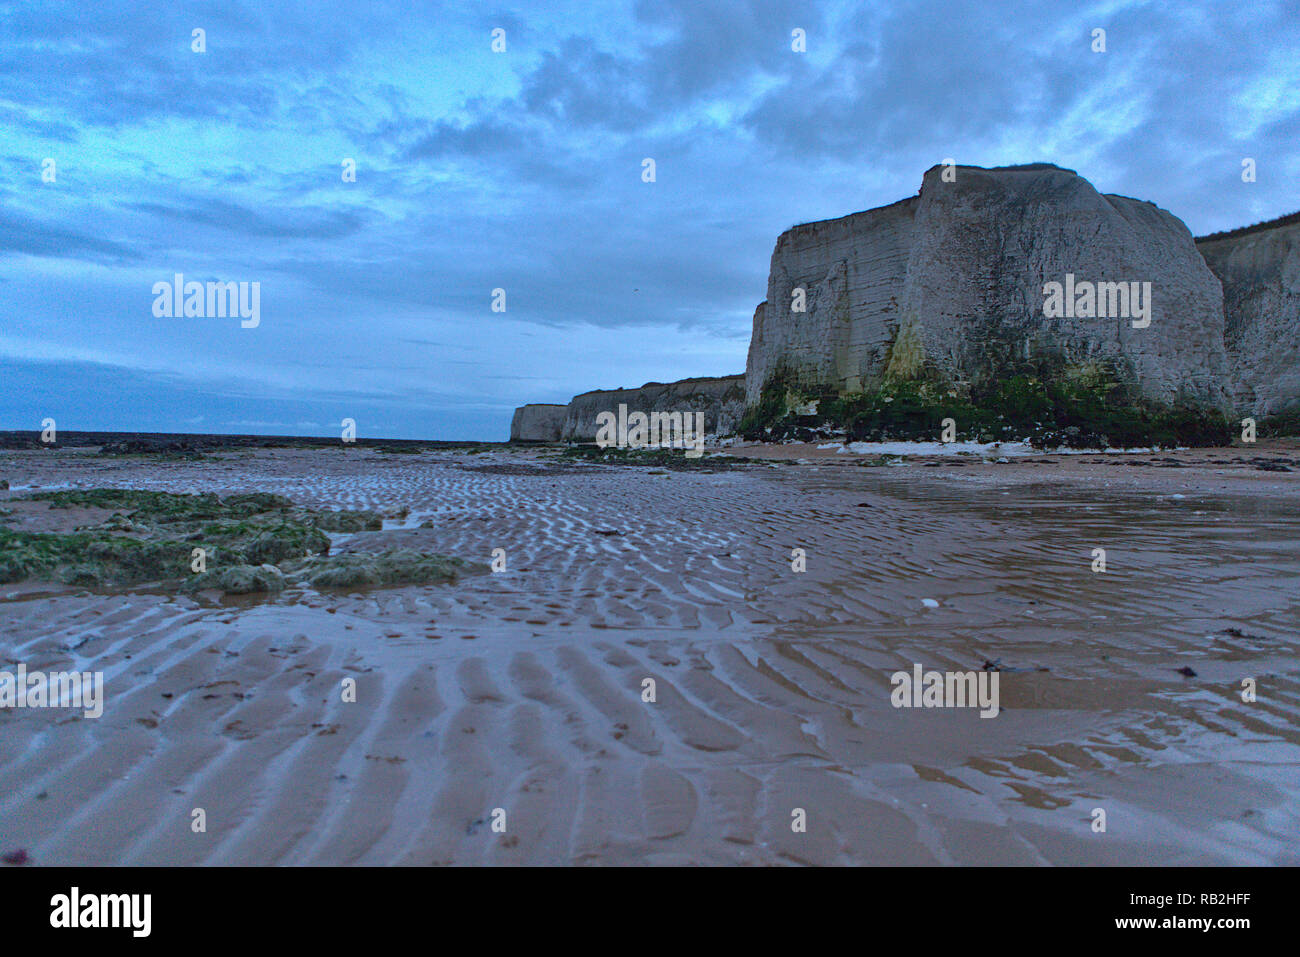 A walk along the beach at Botany Bay and Clifftonville near Margate - Stock Image